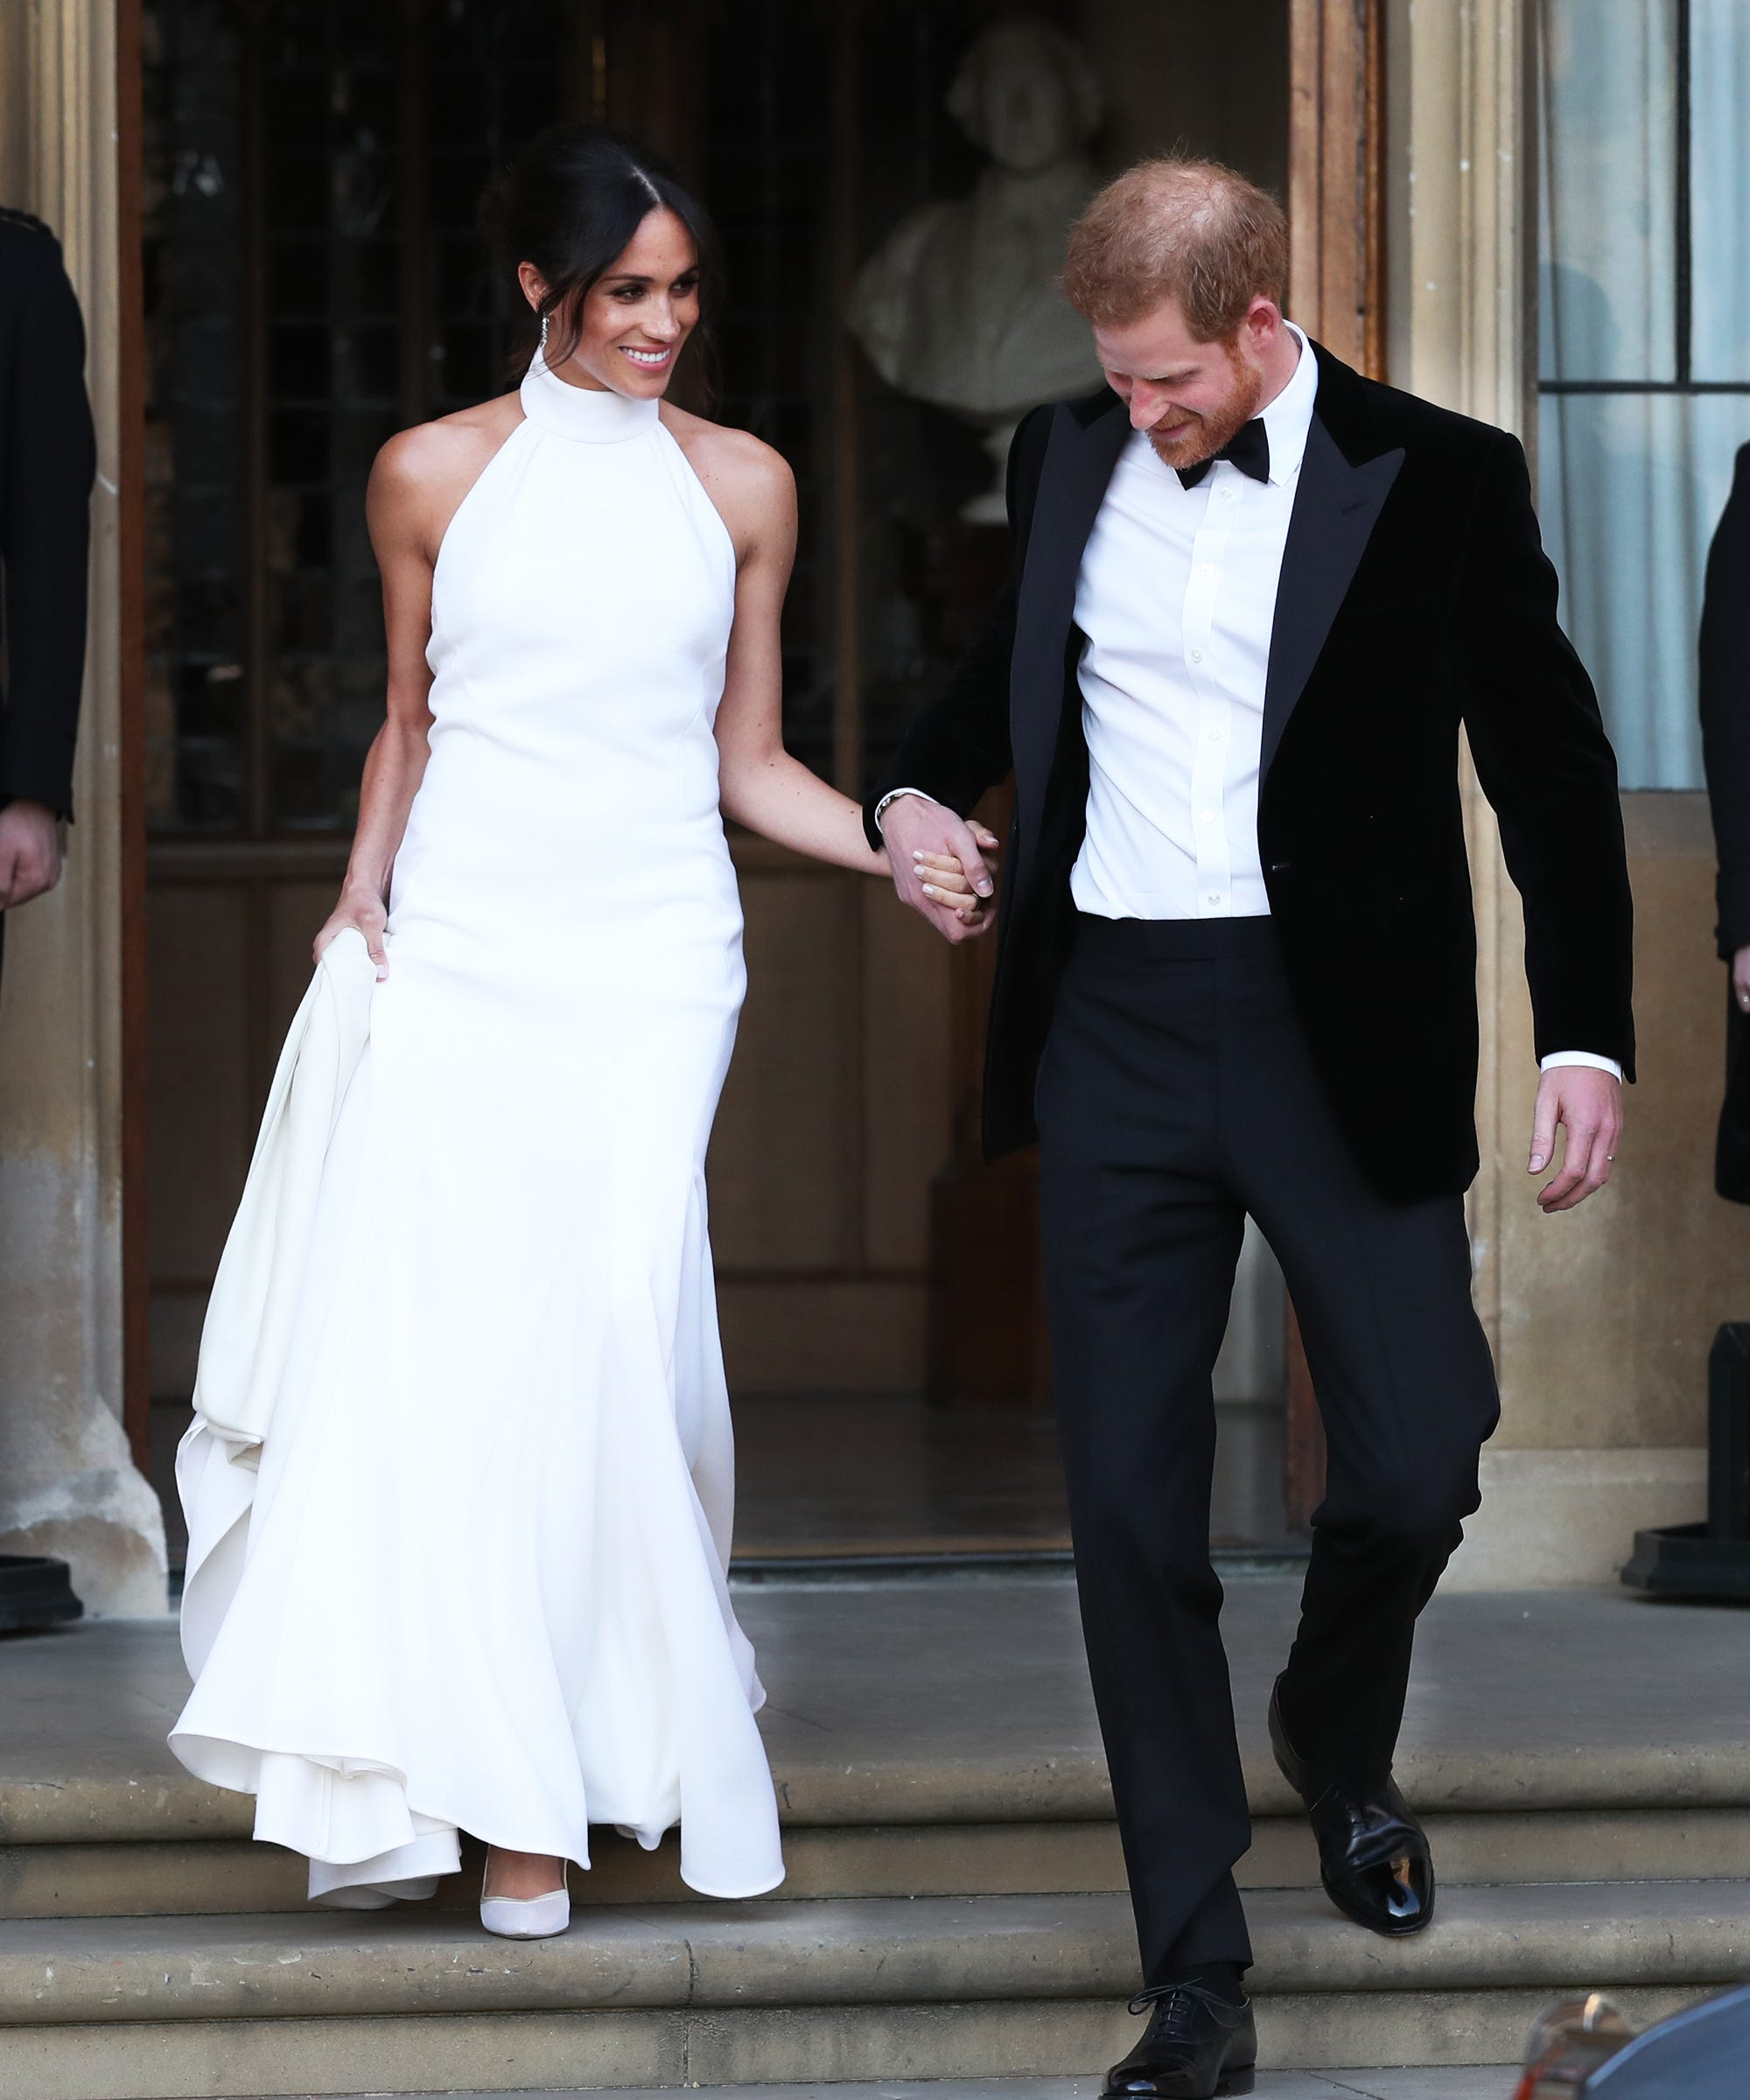 Now You Can Buy A Replica Of Meghan Markle's Reception Dress: Diana Replica Wedding Dress At Reisefeber.org